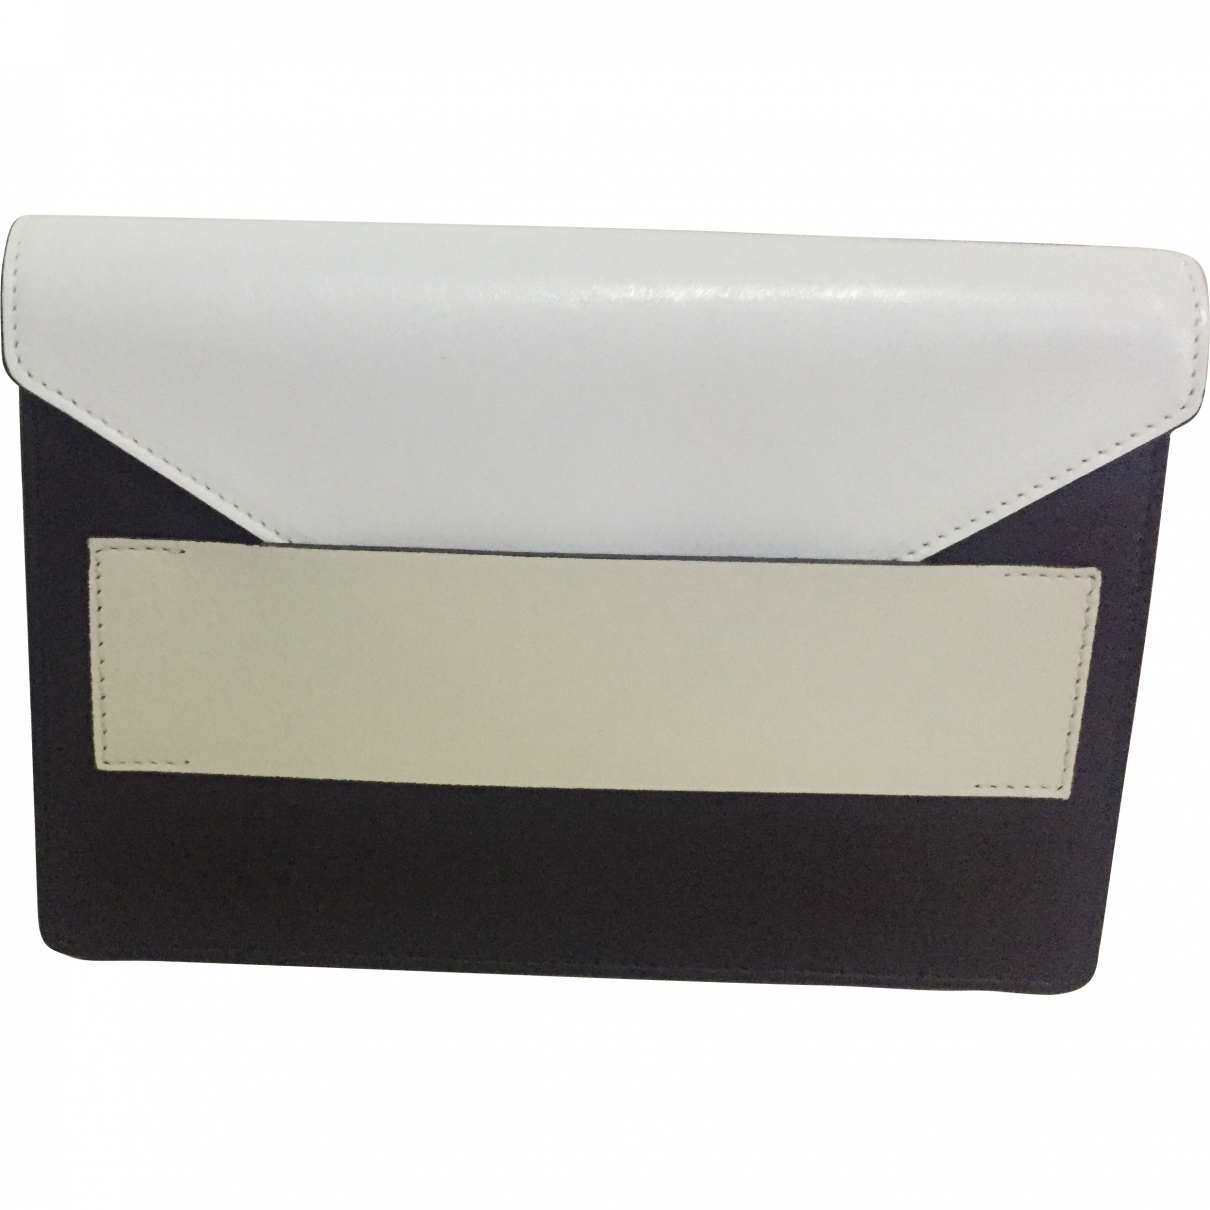 Narciso Rodriguez \N White Leather Clutch bag for Women \N